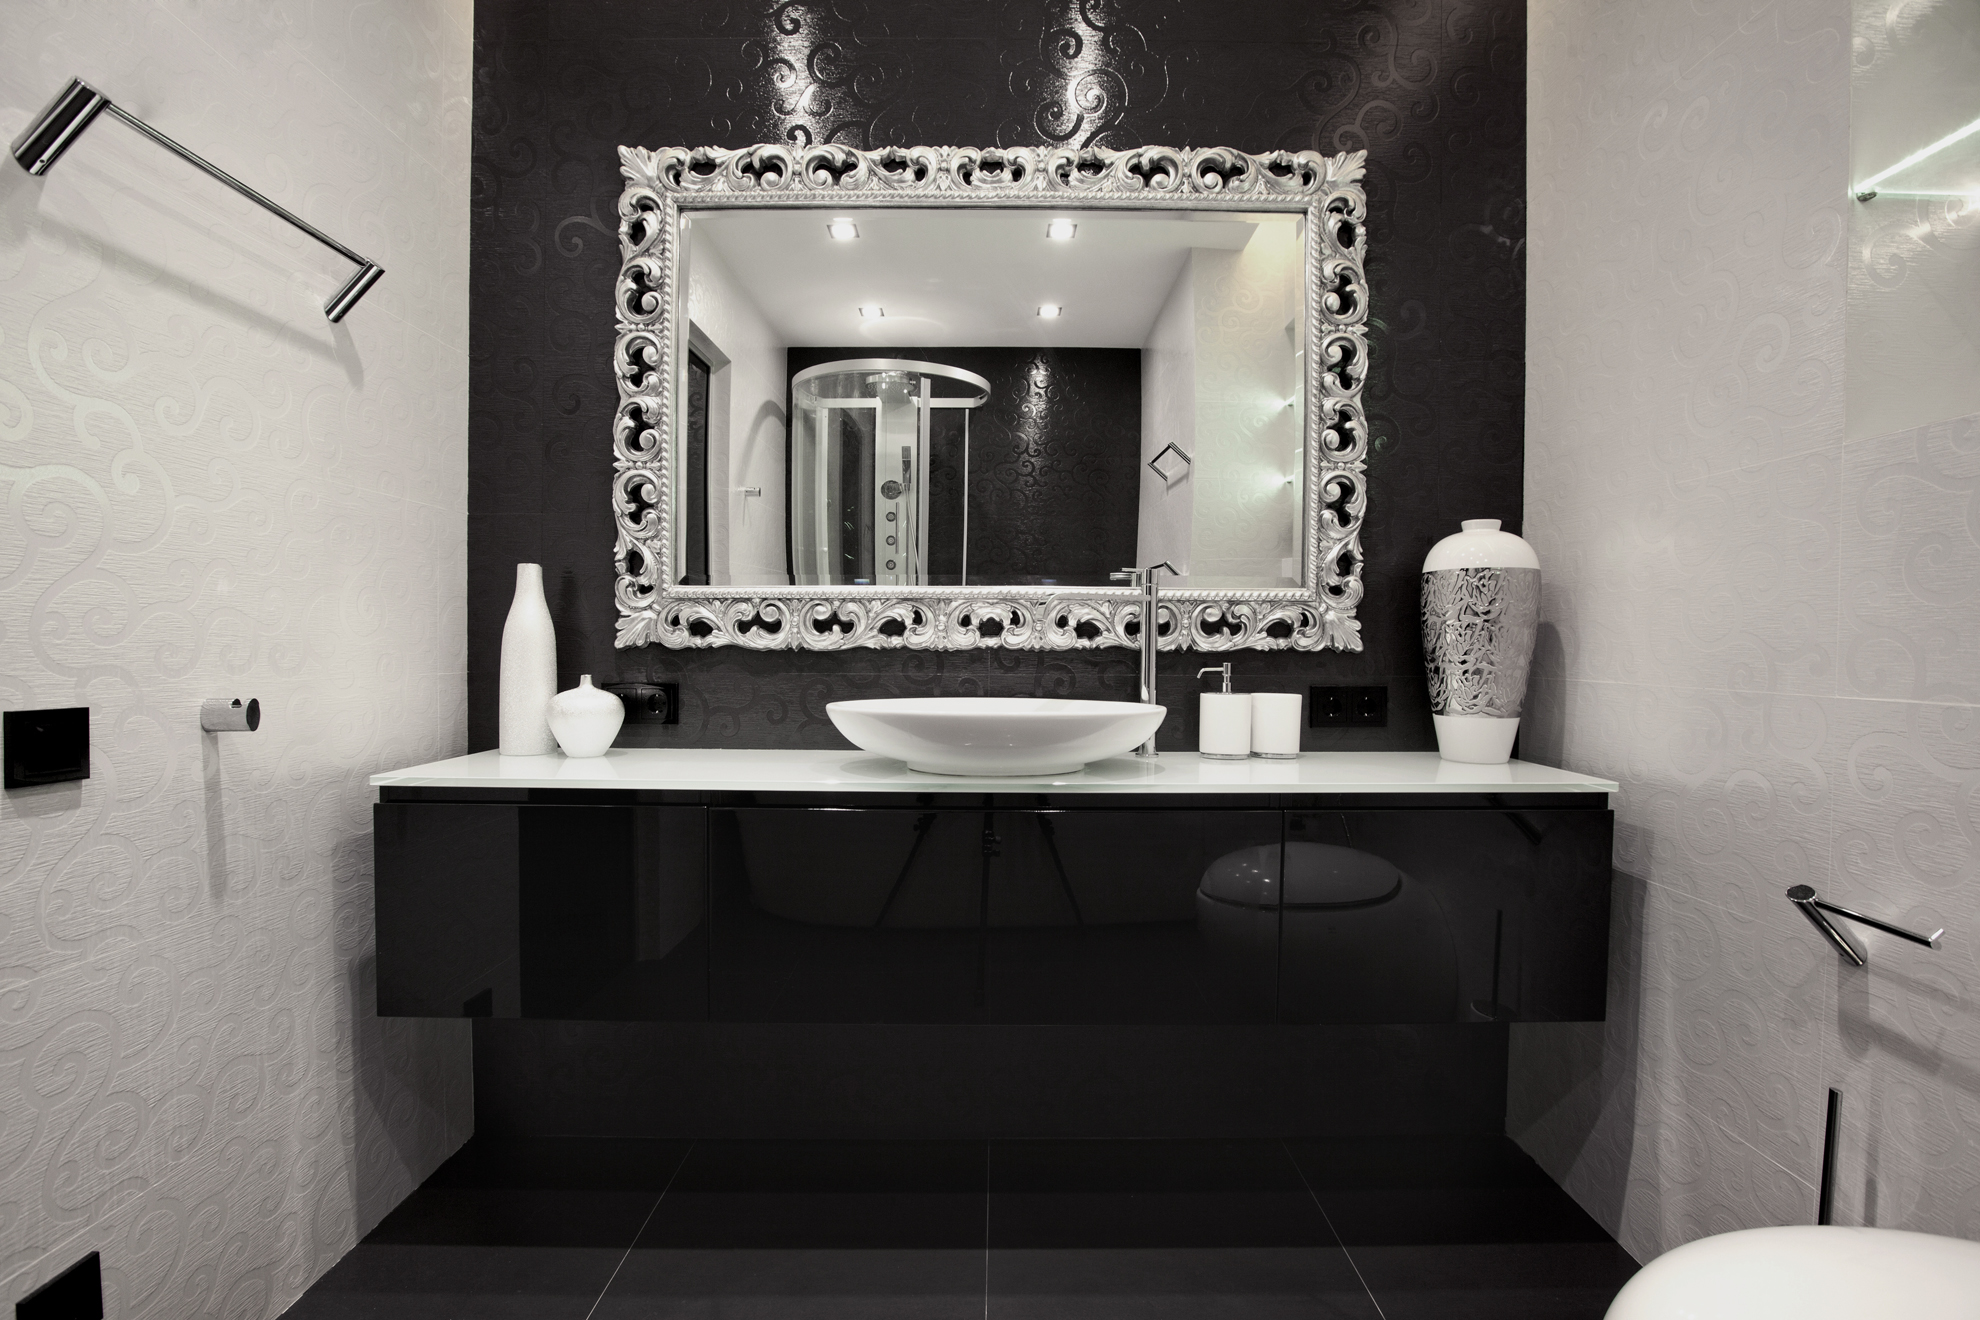 Beautiful In the bathroom black and white tiles are engraved with swirling patterns to add extra interest